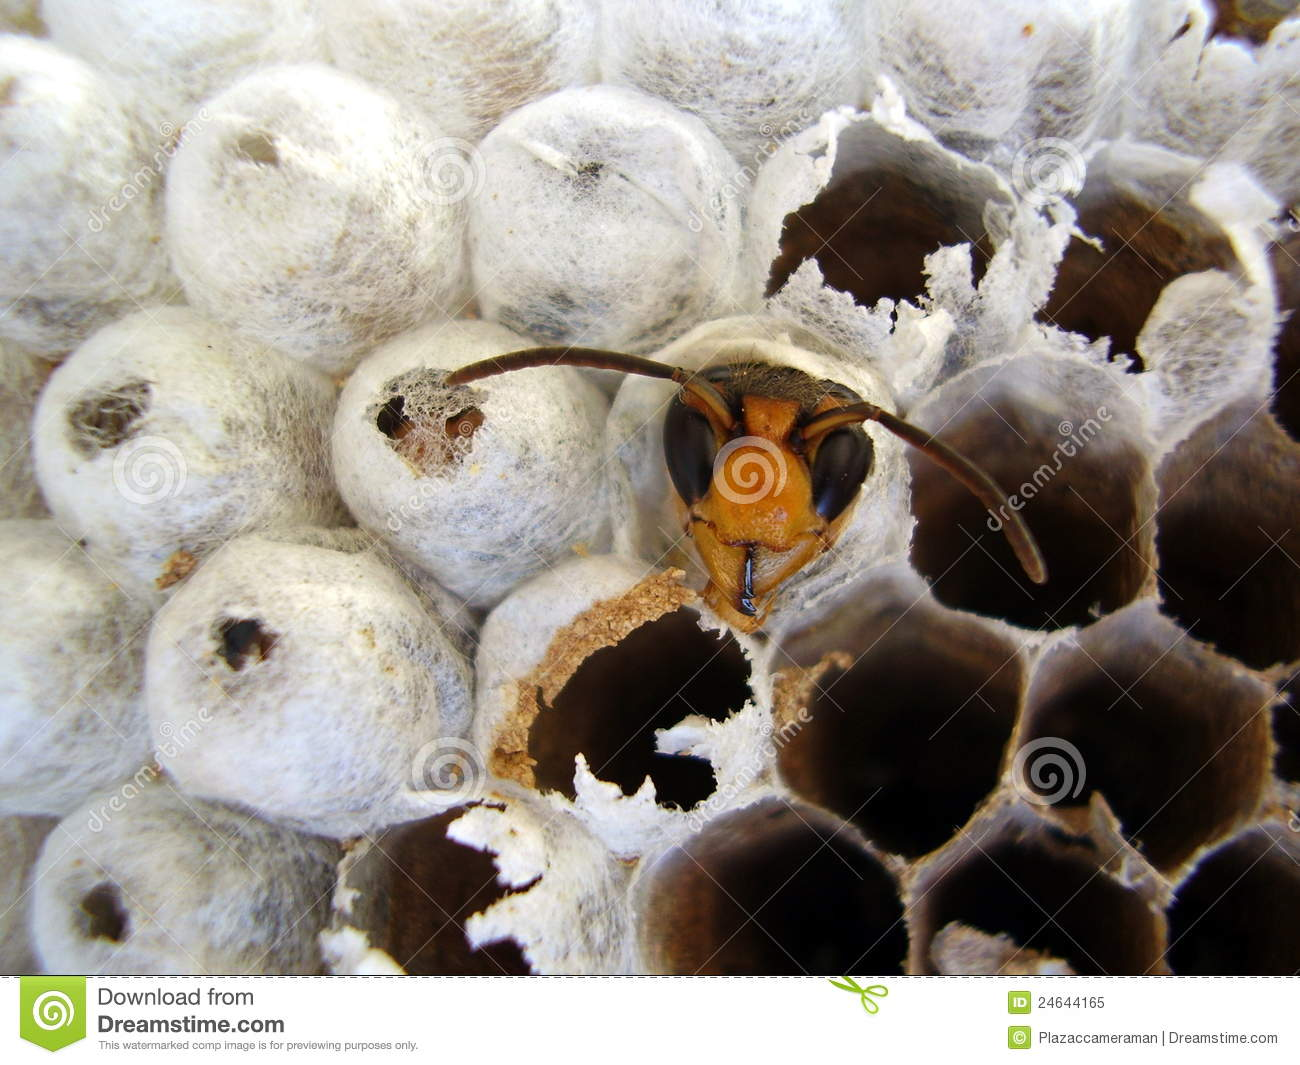 Wasp emerging from nest